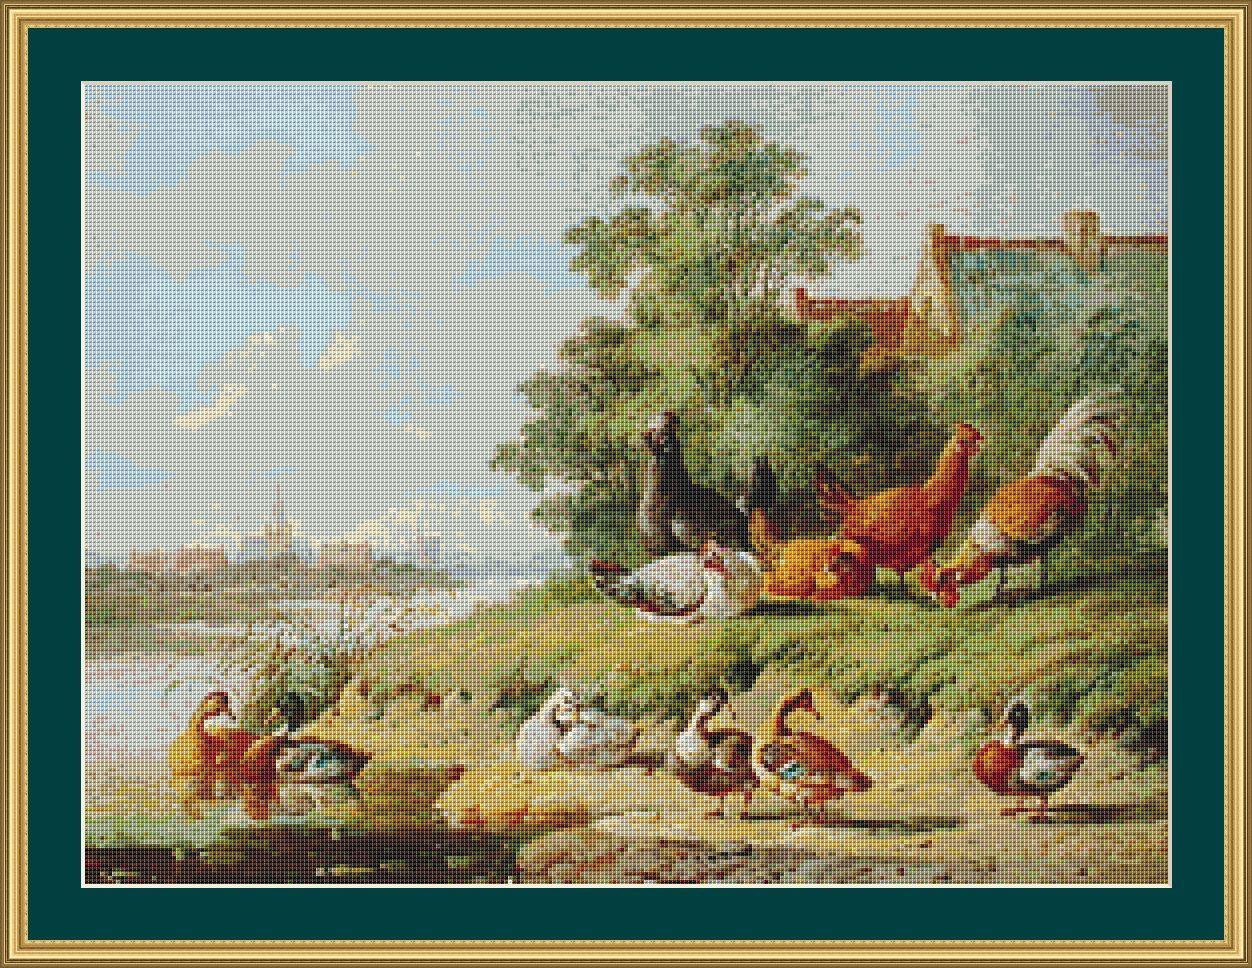 A cross stitch pattern of ducks and chickens on a riverbank in a painting by Albertus Verhoesen. $6.00